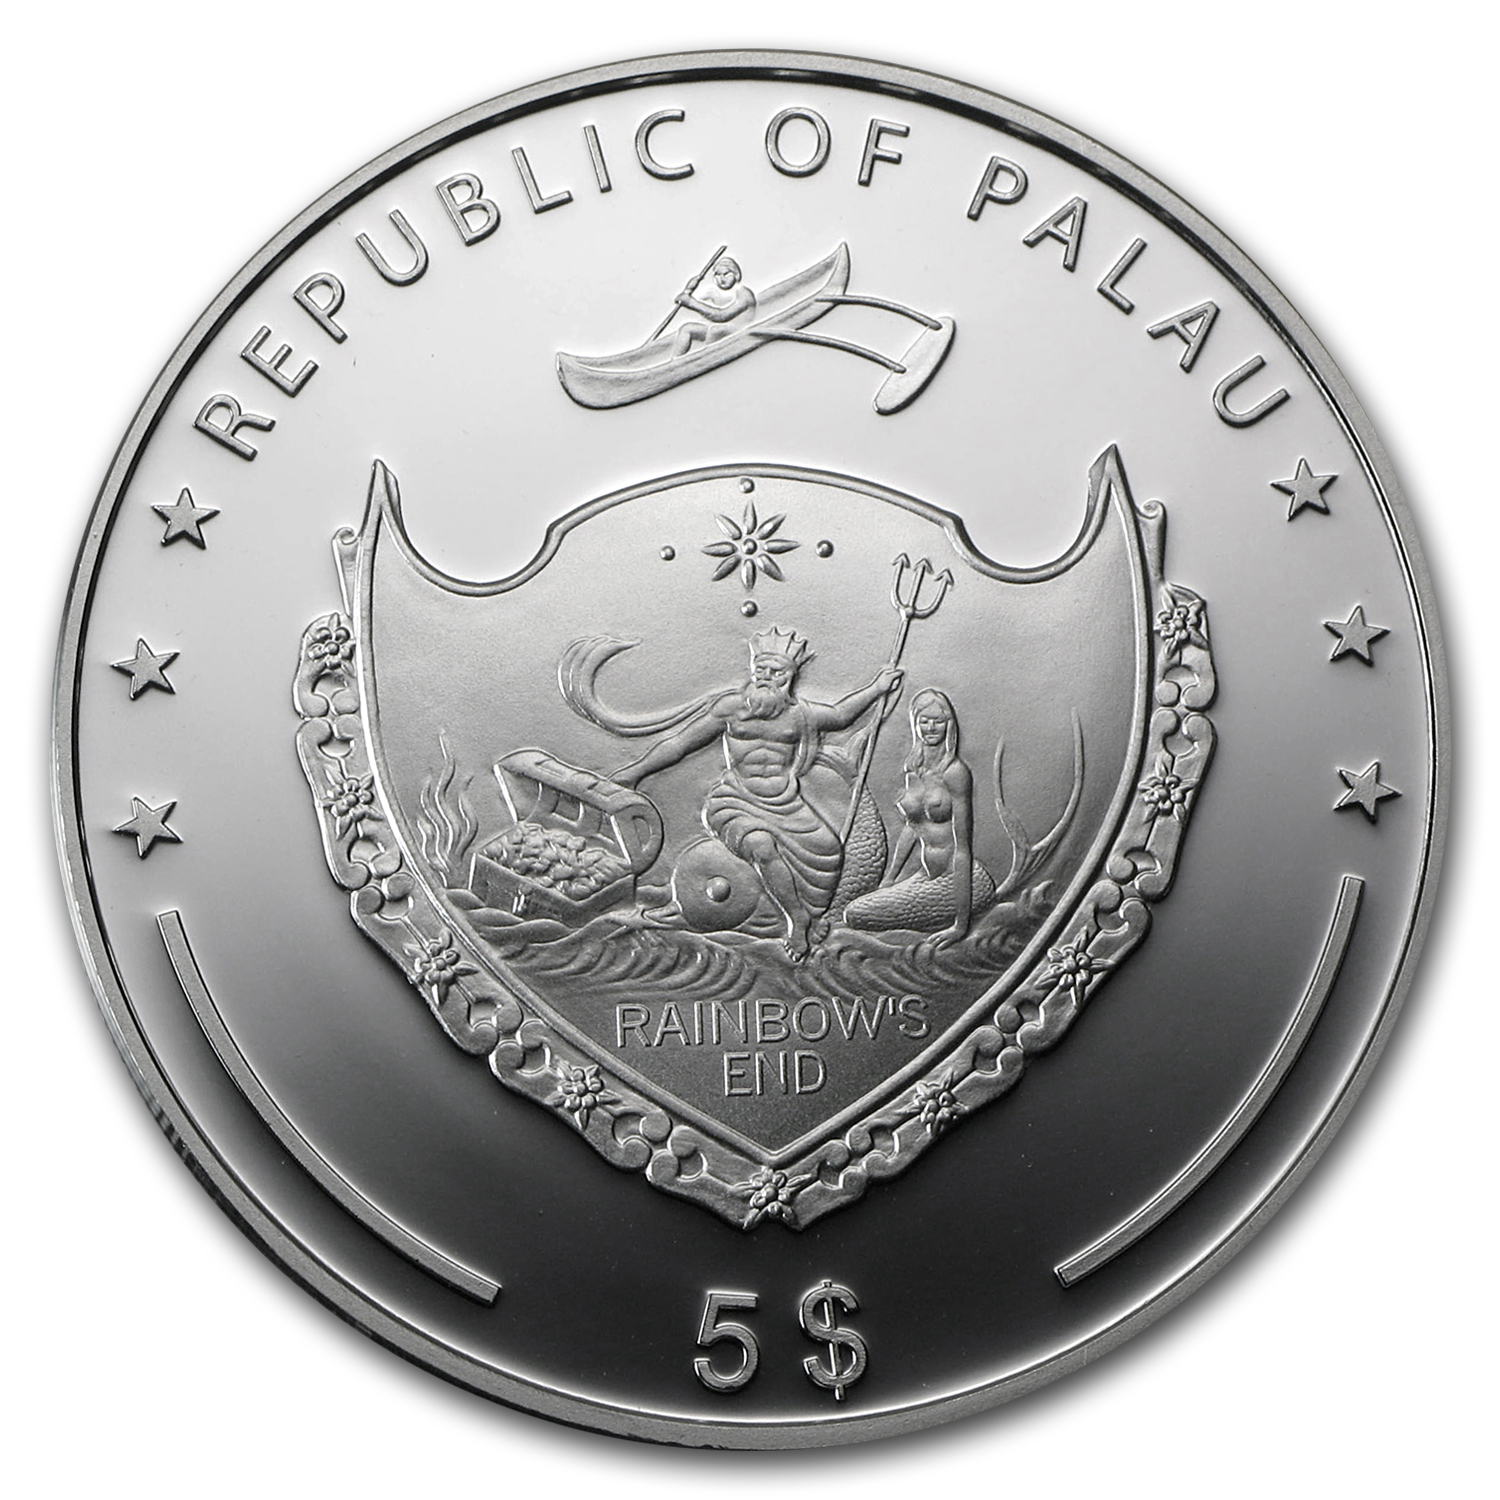 2011 Palau Proof Silver $5 World of Wonders Statue of Liberty